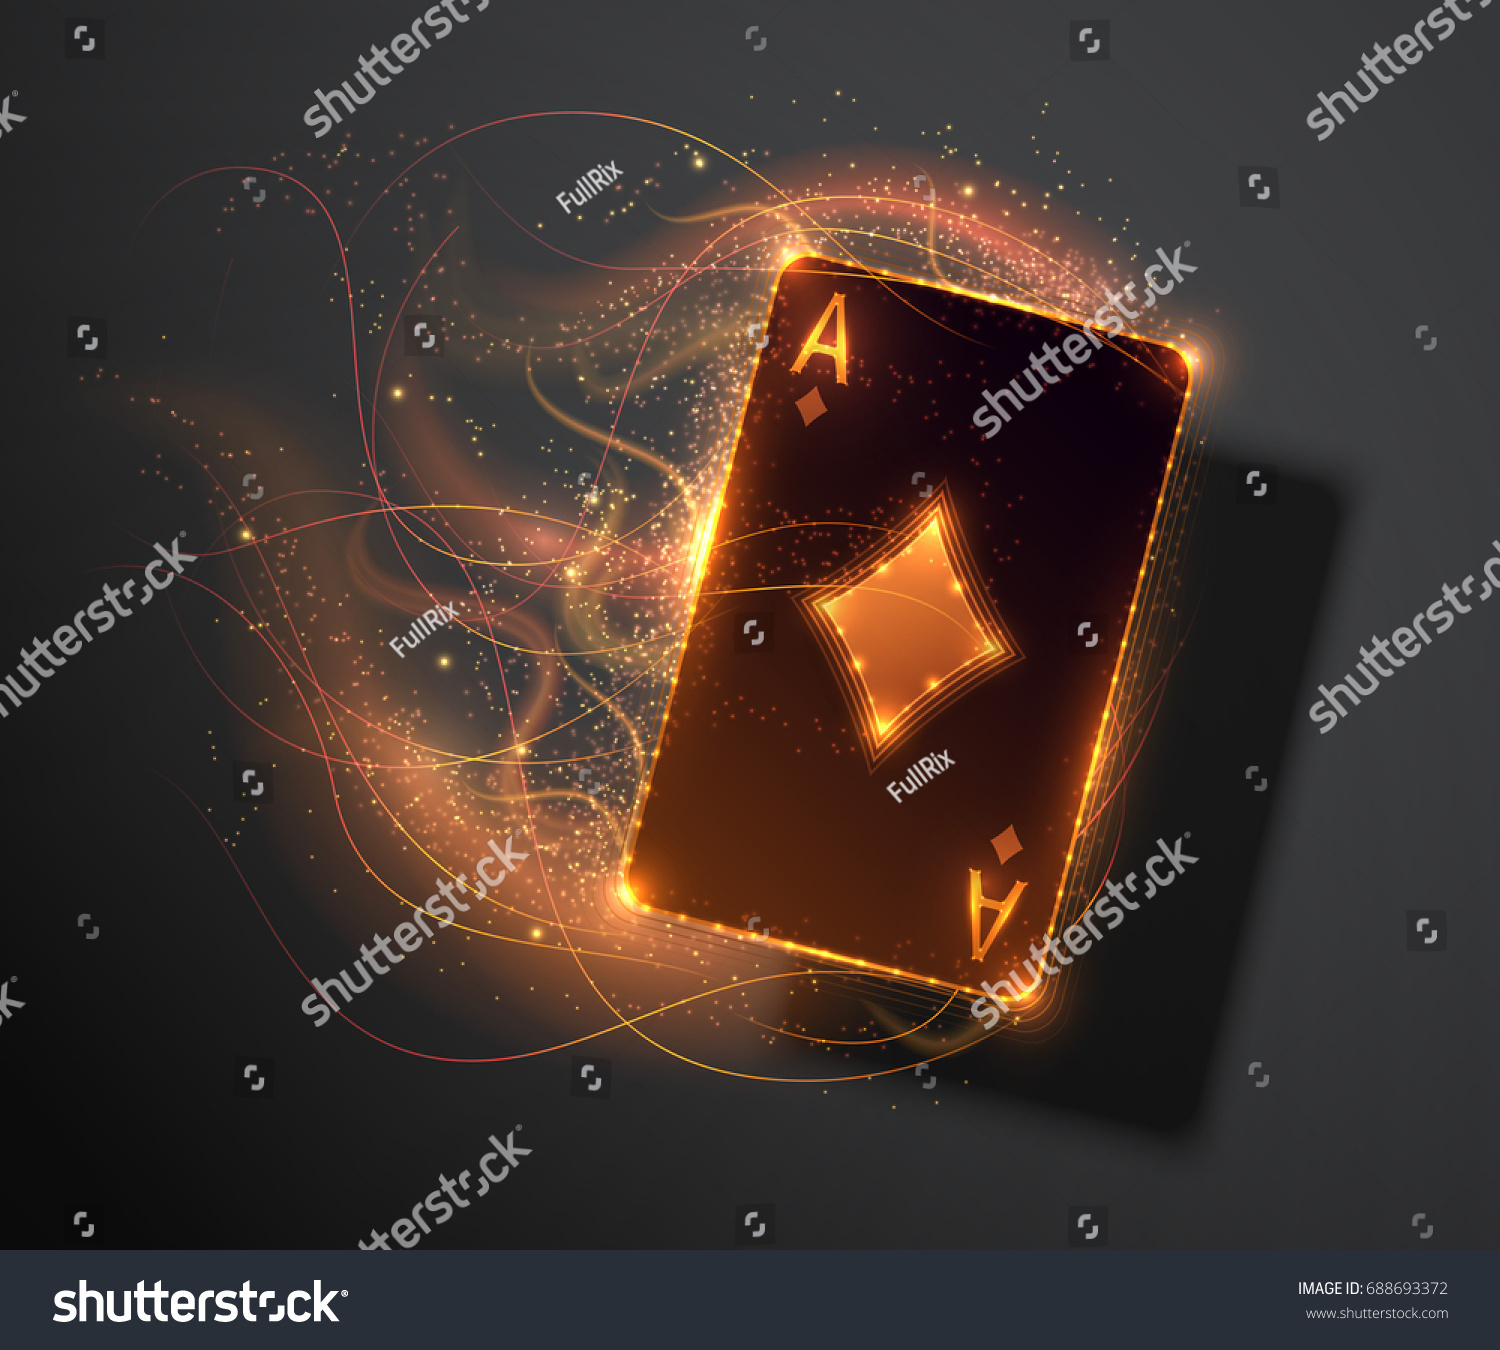 Ace Card Fire Effect Poker Casino Stock Vector (Royalty Free) 688693372.